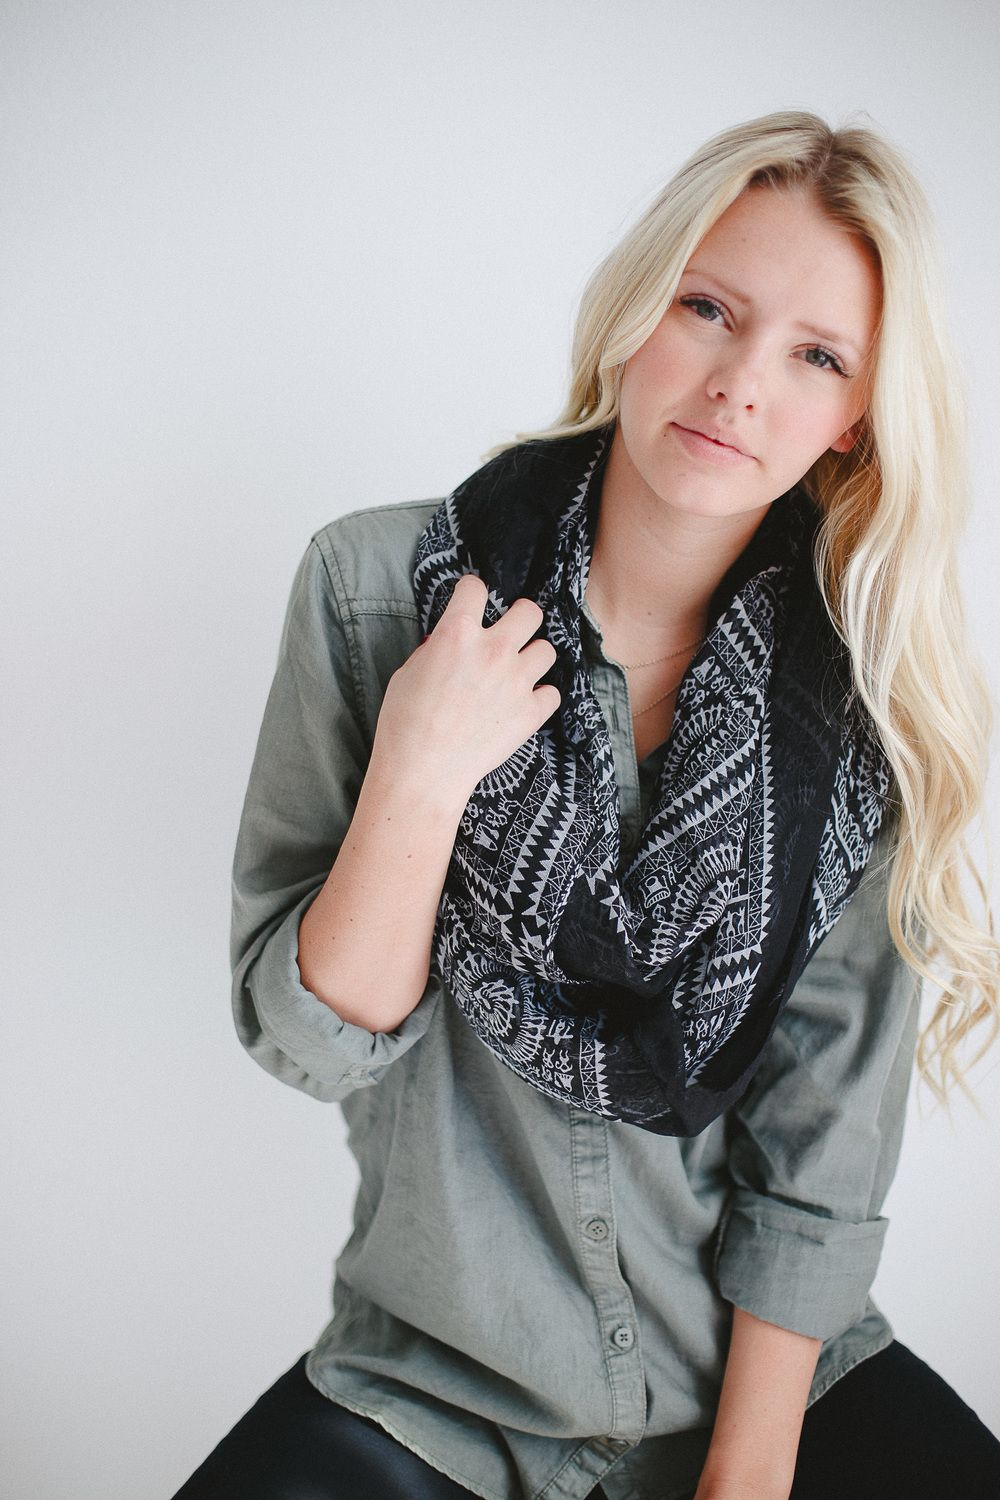 Bordeaux - Jacob's Scarves ||  Well sell scarves to hel educate children. And change the world.